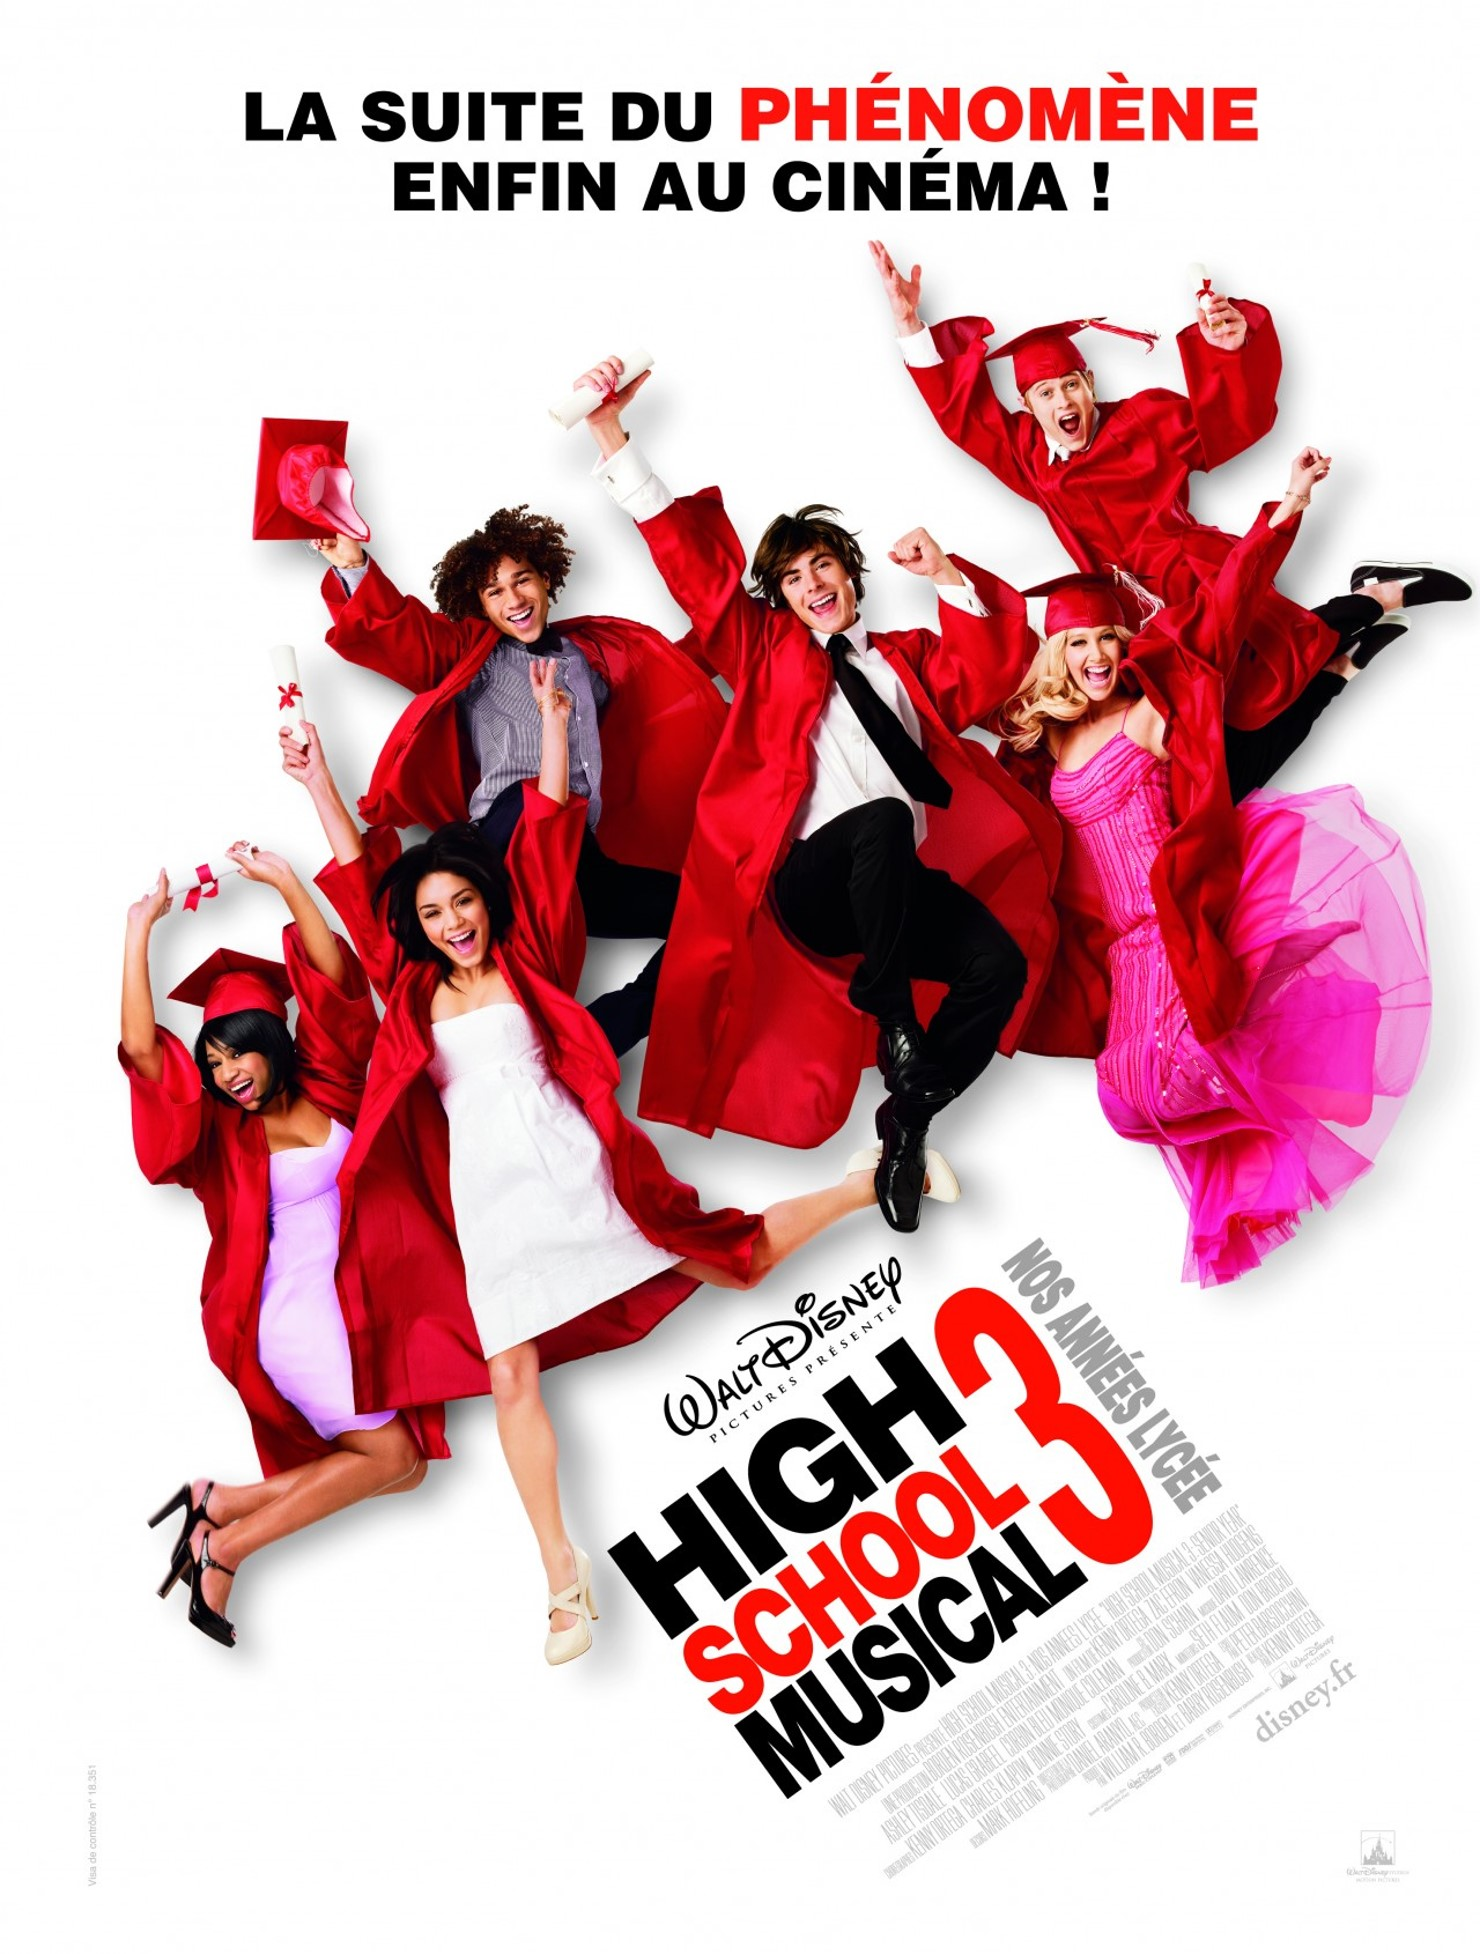 walt disney company walt disney pictures affiche high school musical 3 annees lycee poster senior year